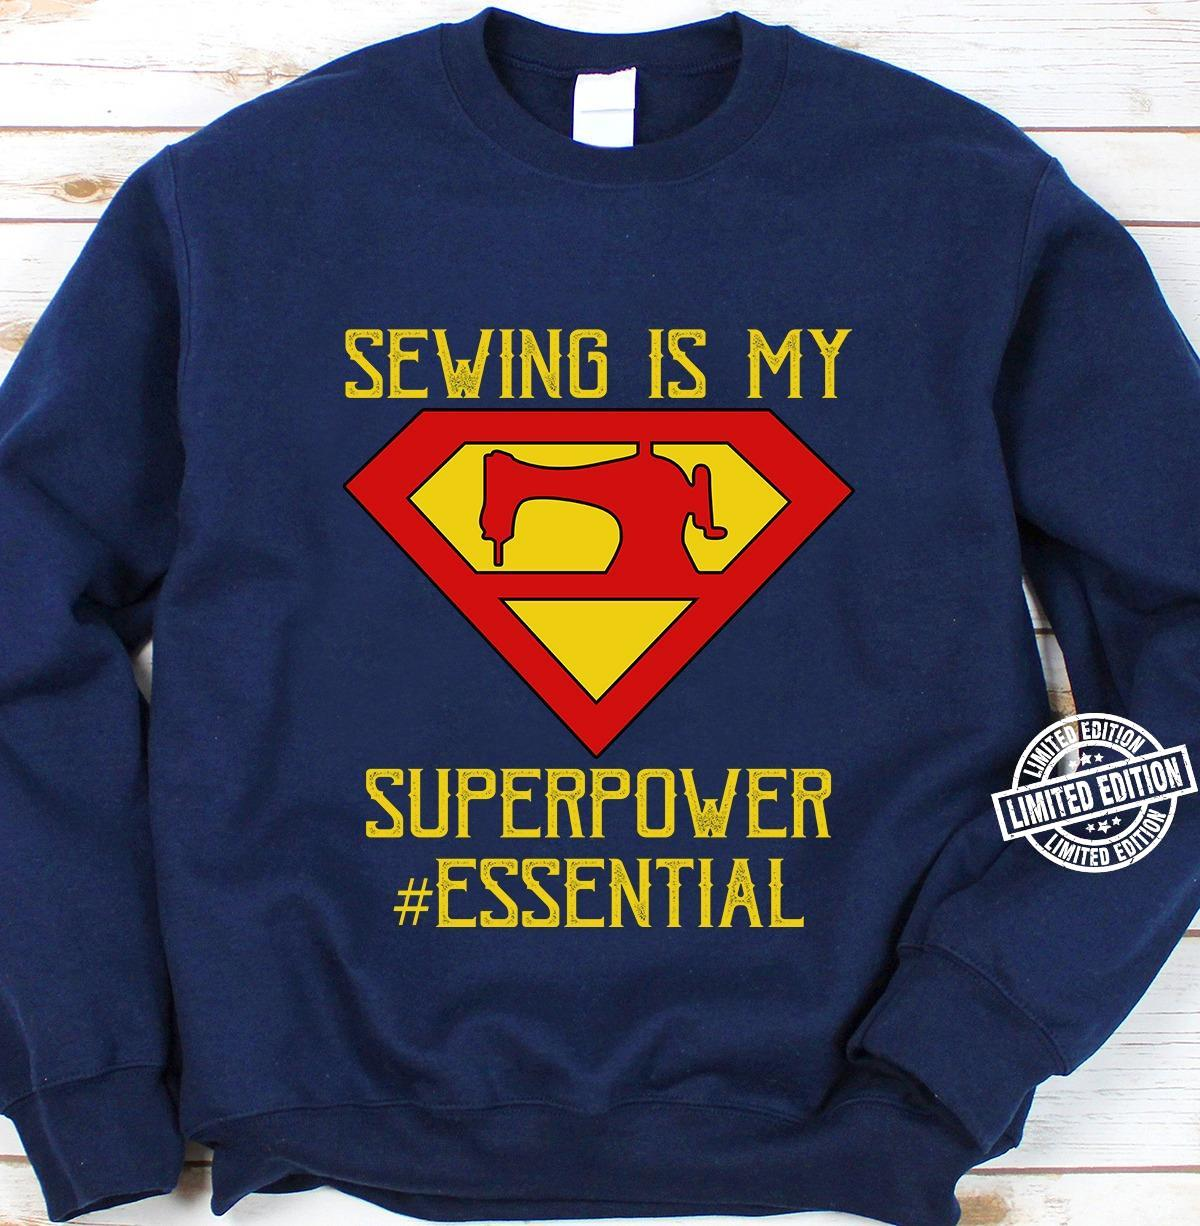 Sewing is my superpower essential shirt